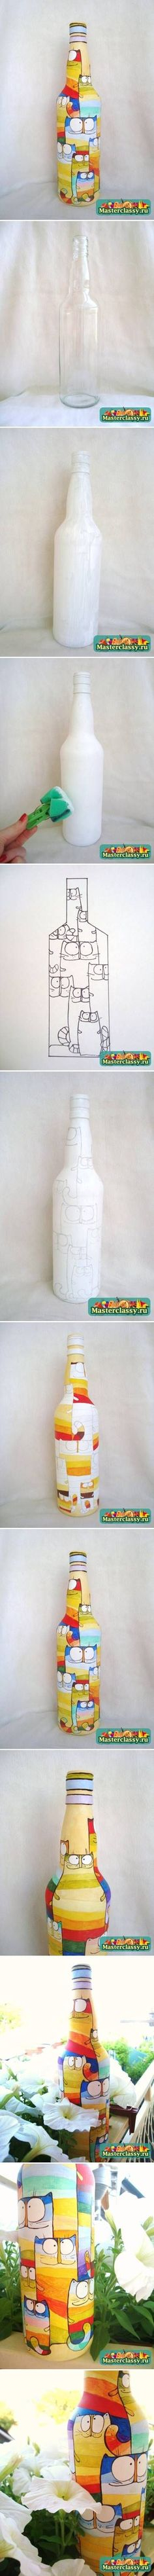 How to paint pretty Acrylic Painting on bottles step by step DIY tutorial instructions / How To Instructions on imgfave